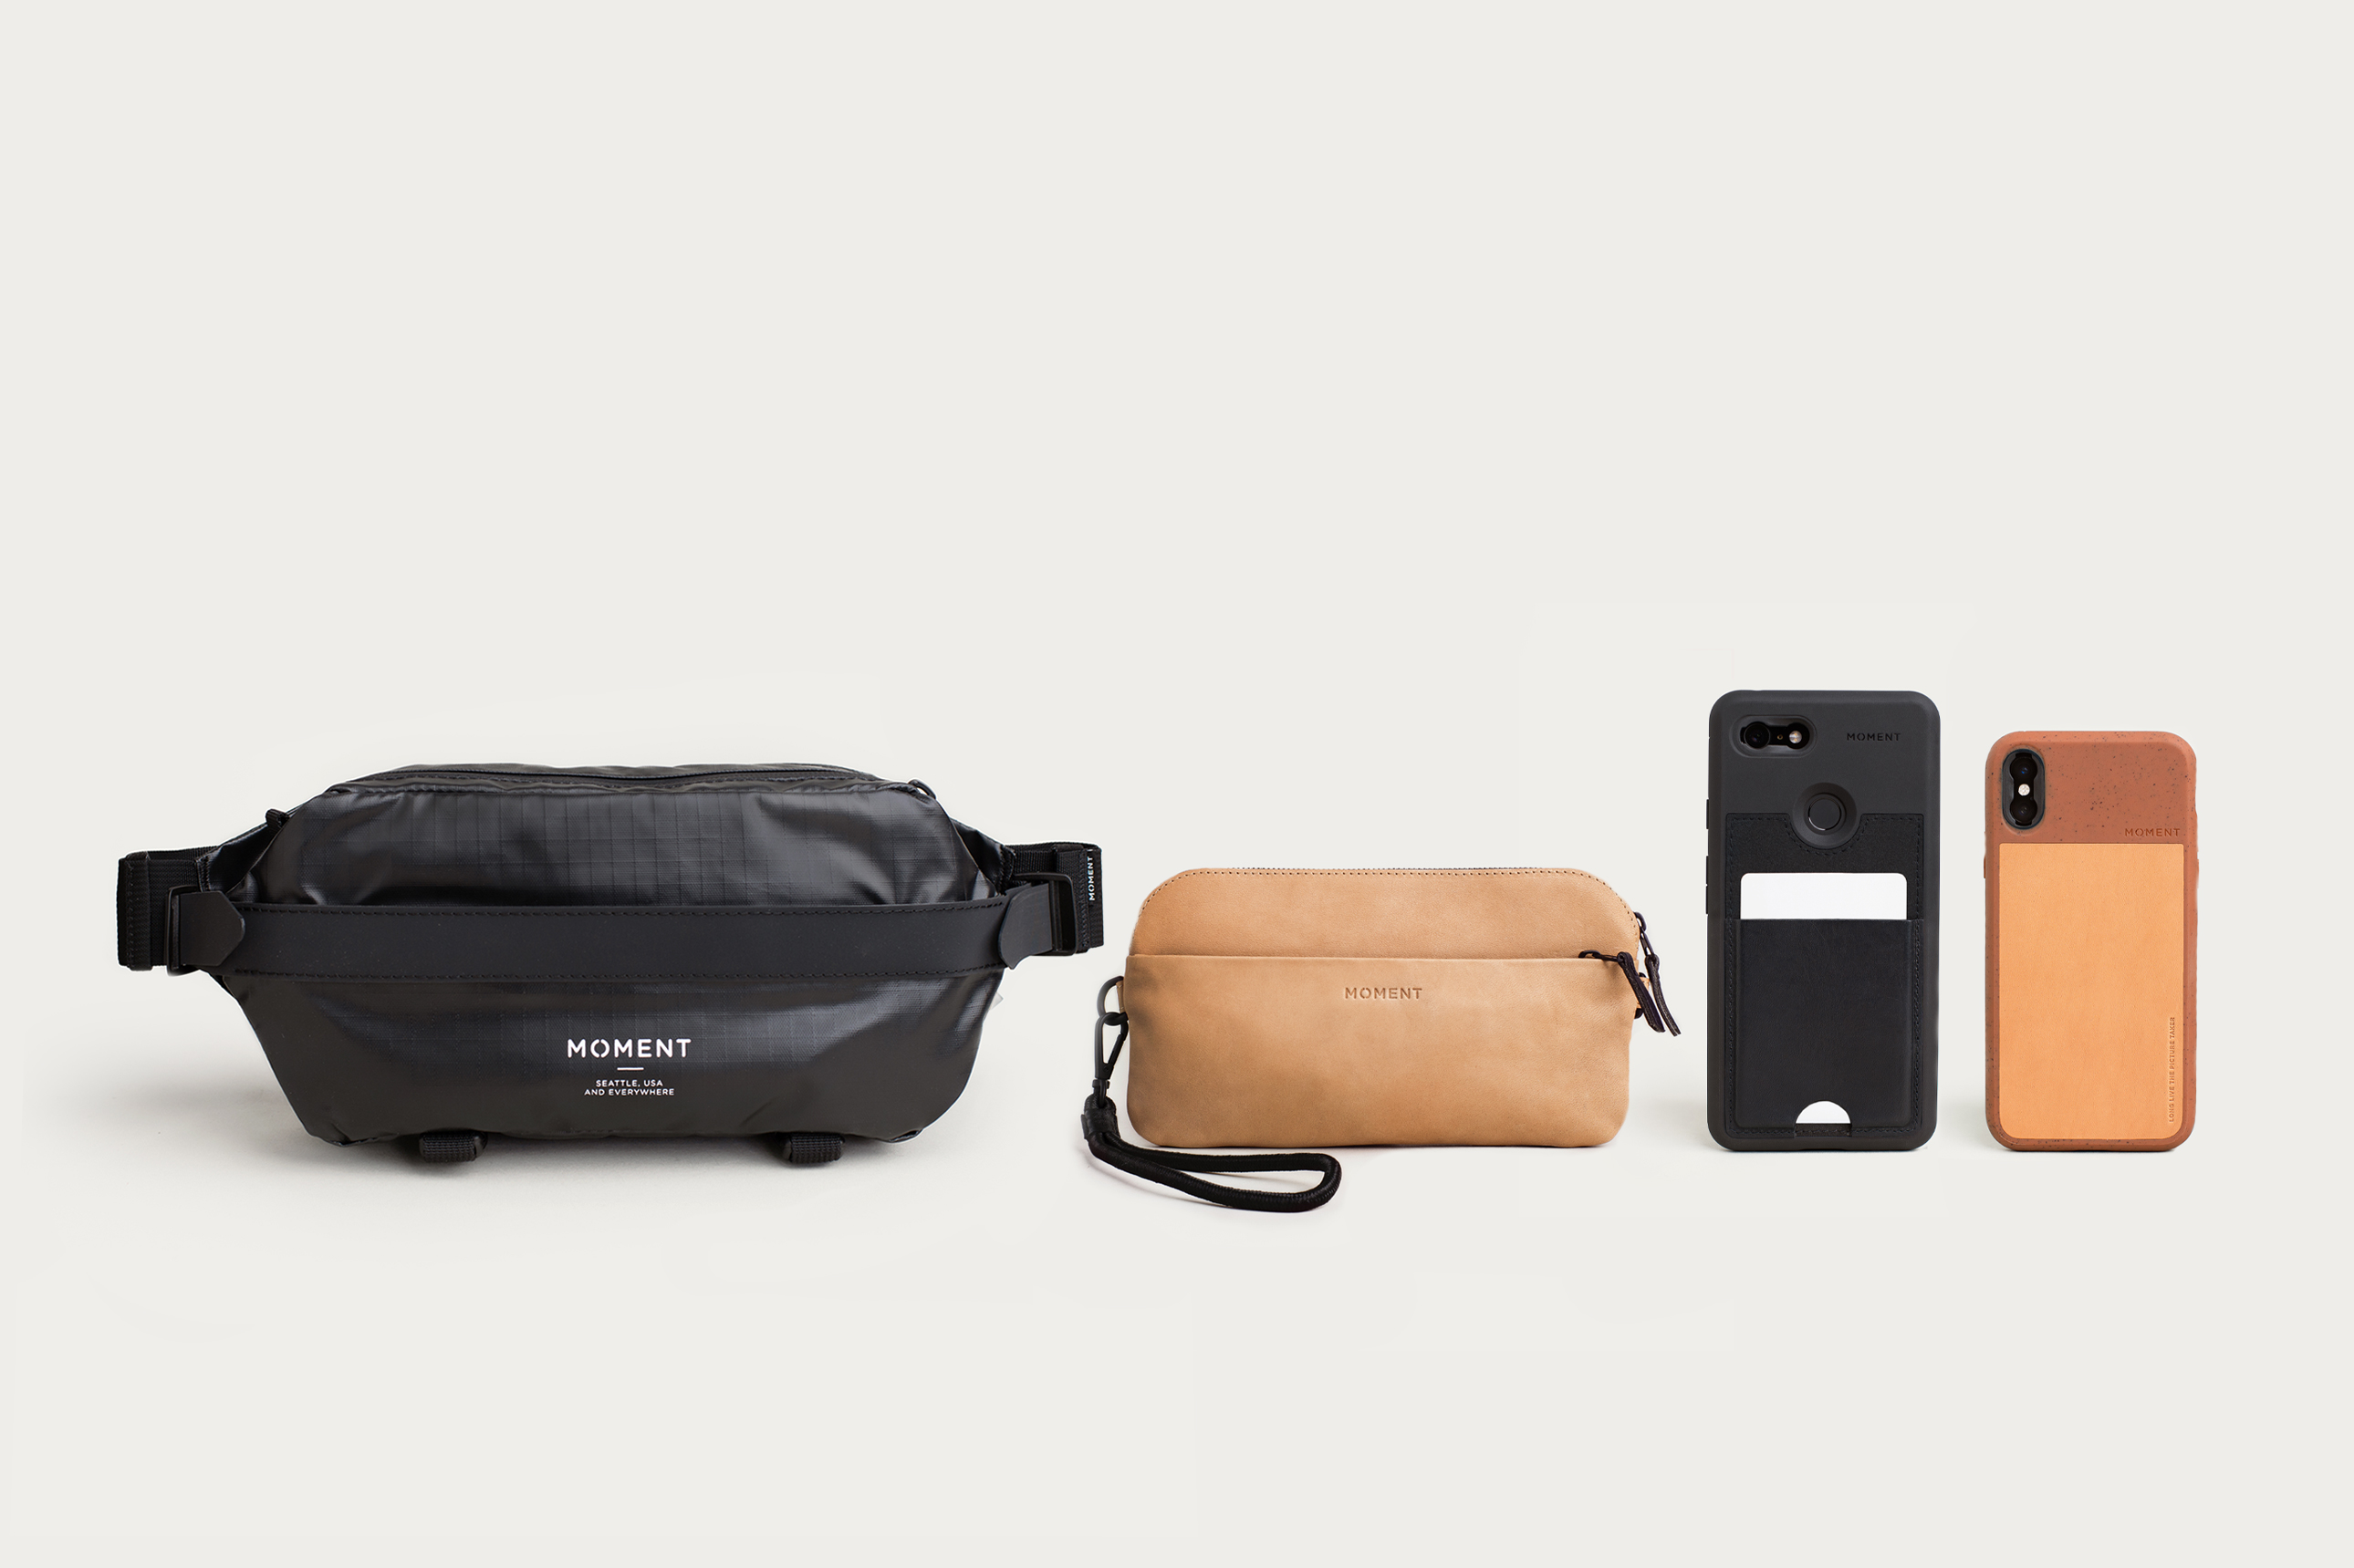 489db4547ce7 Moment launches new line of bags and wallet cases